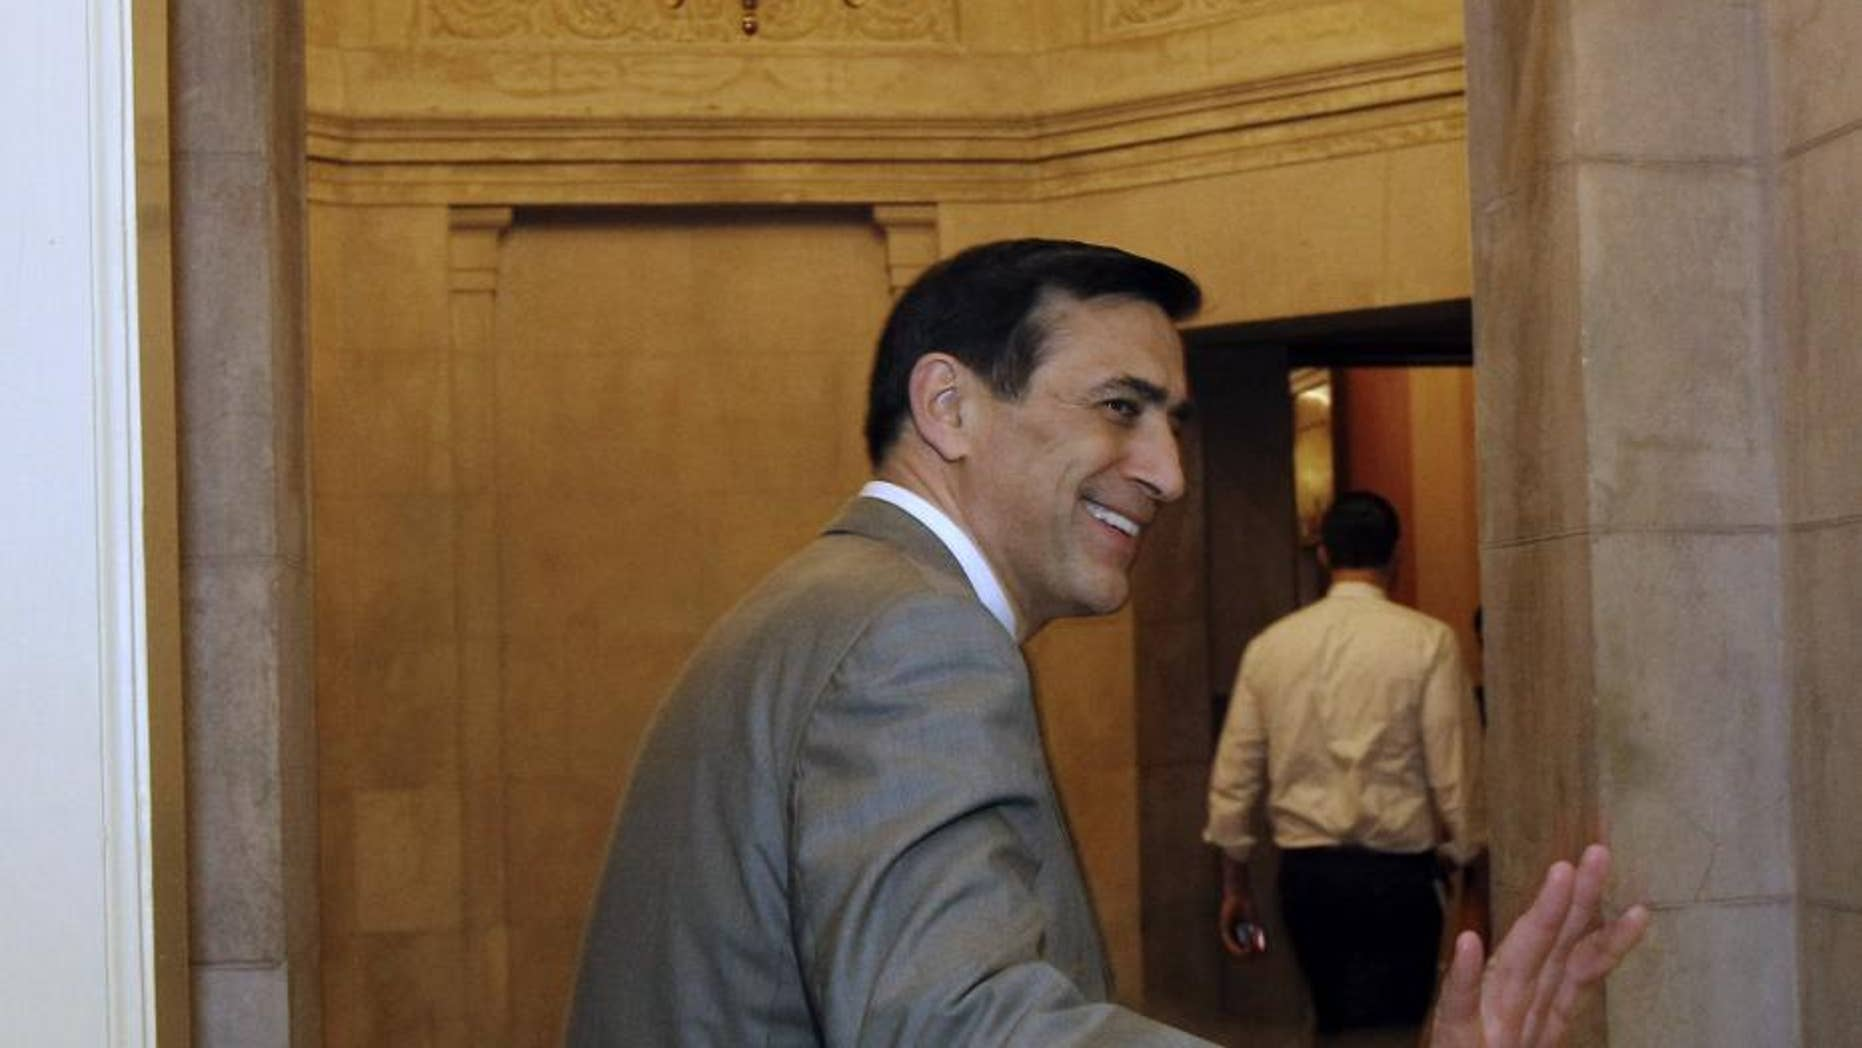 Rep. Darrell Issa, R-Calif., goes into Speaker John Boehner's office on Capitol Hill Friday, April 8, 2011 in Washington.(AP Photo/Alex Brandon)